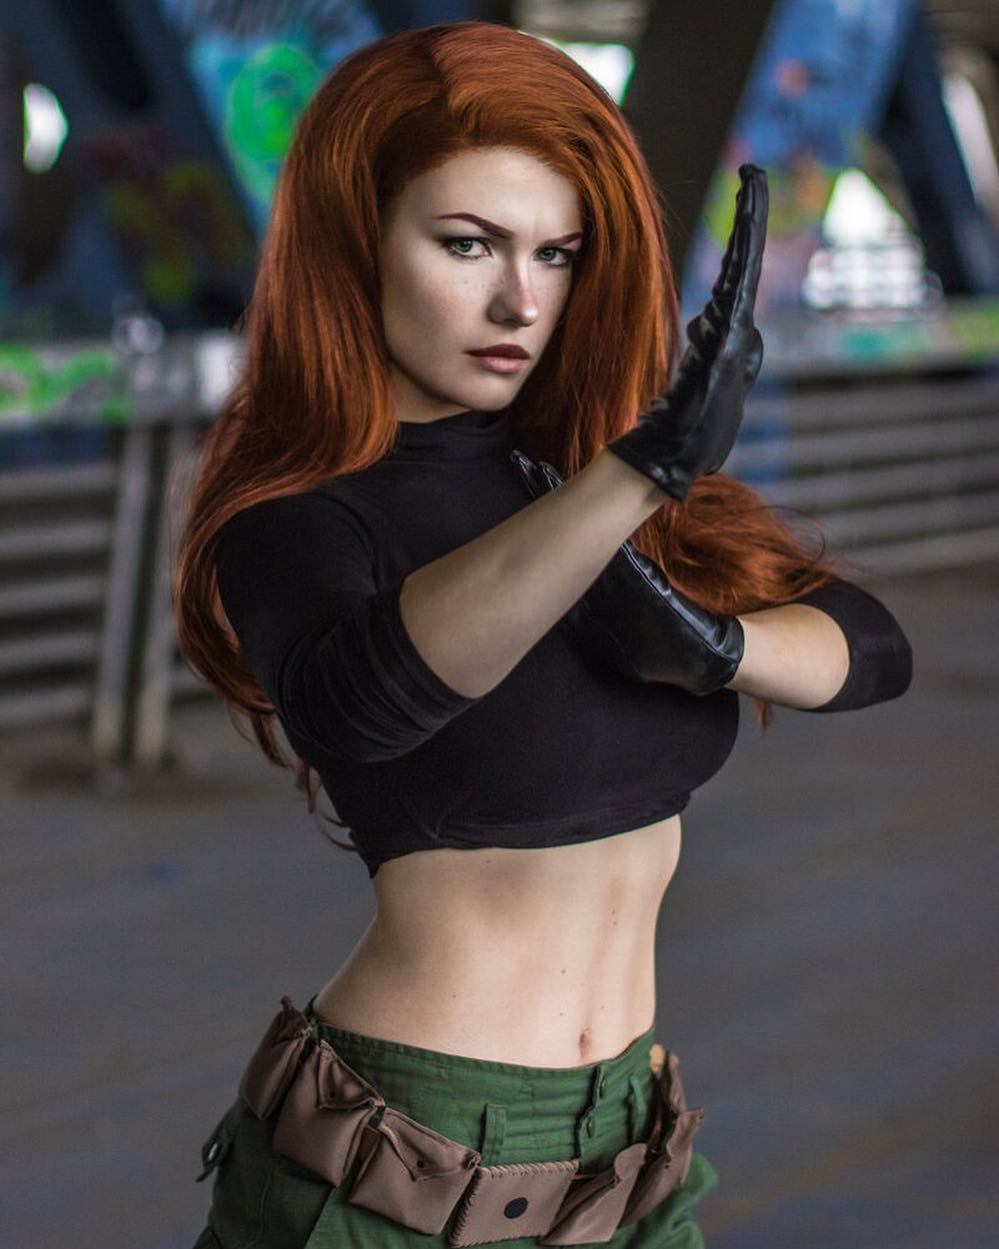 Russian Cosplayer Transforms Herself Into Different Characters [34 Photos]